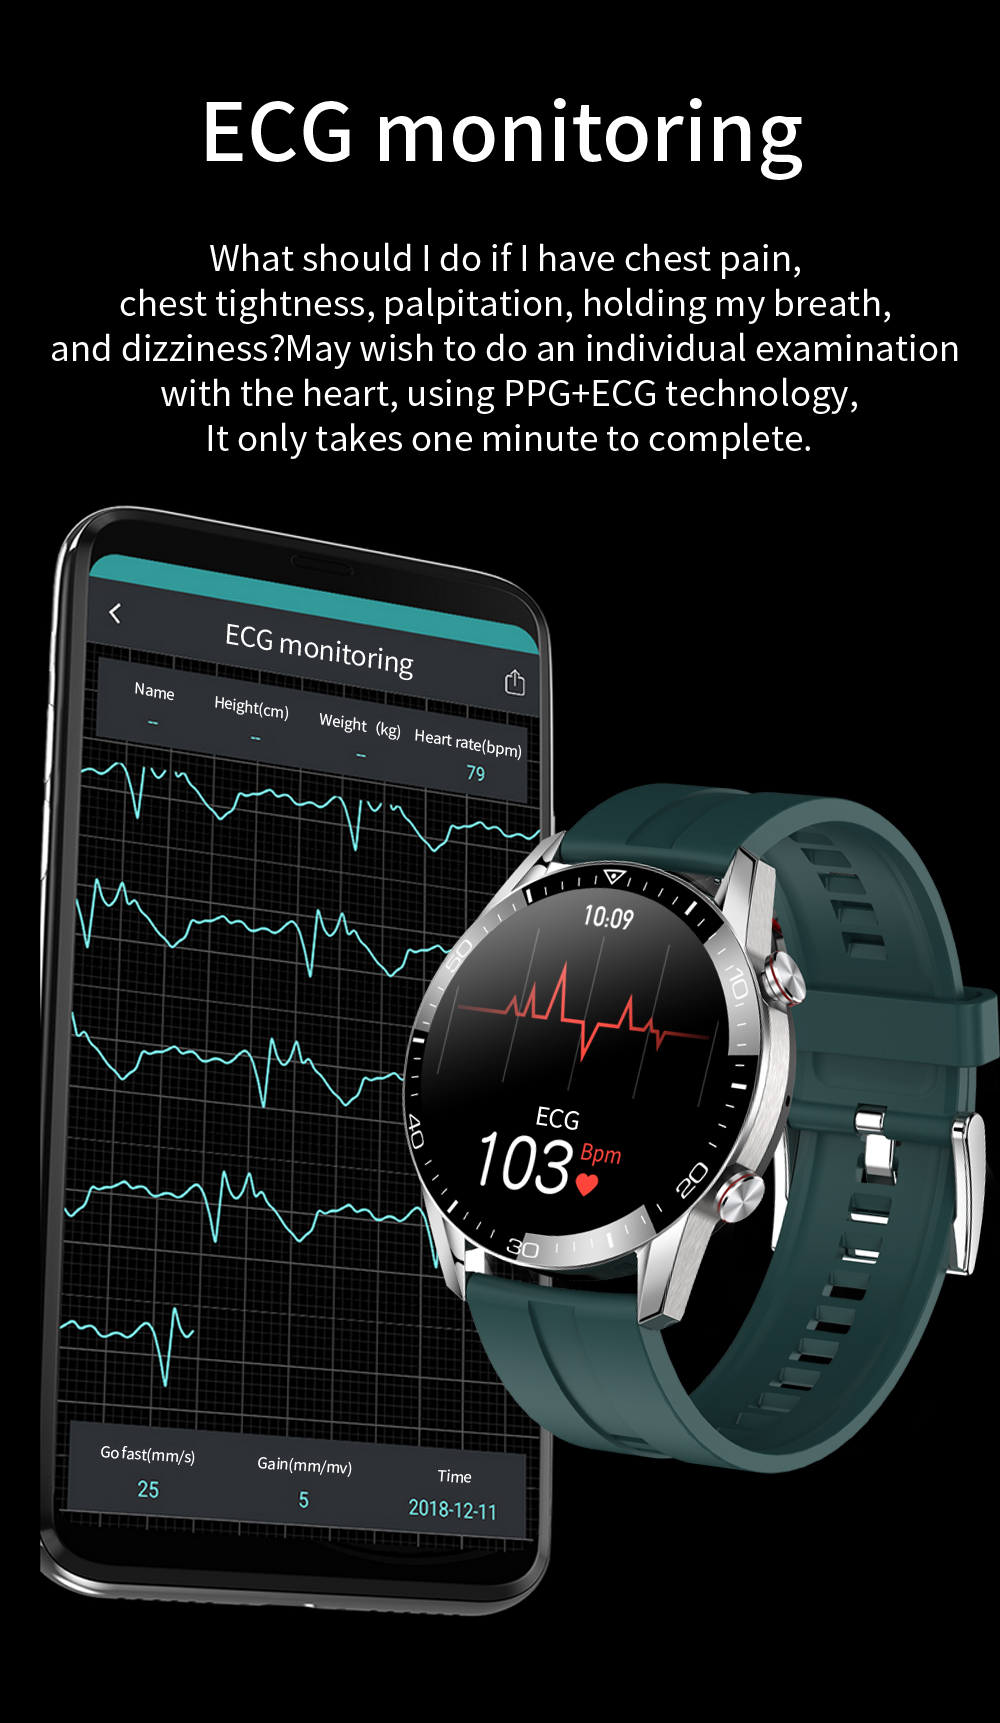 H664dd1cc2d2041dd93c1c7ccb7e91267Z New Smart Watch Men Bluetooth Call TK2-8 IP68 Waterproof Heart Rate Blood Pressure SmartWatch Fitness Tracker Sports Android IOS